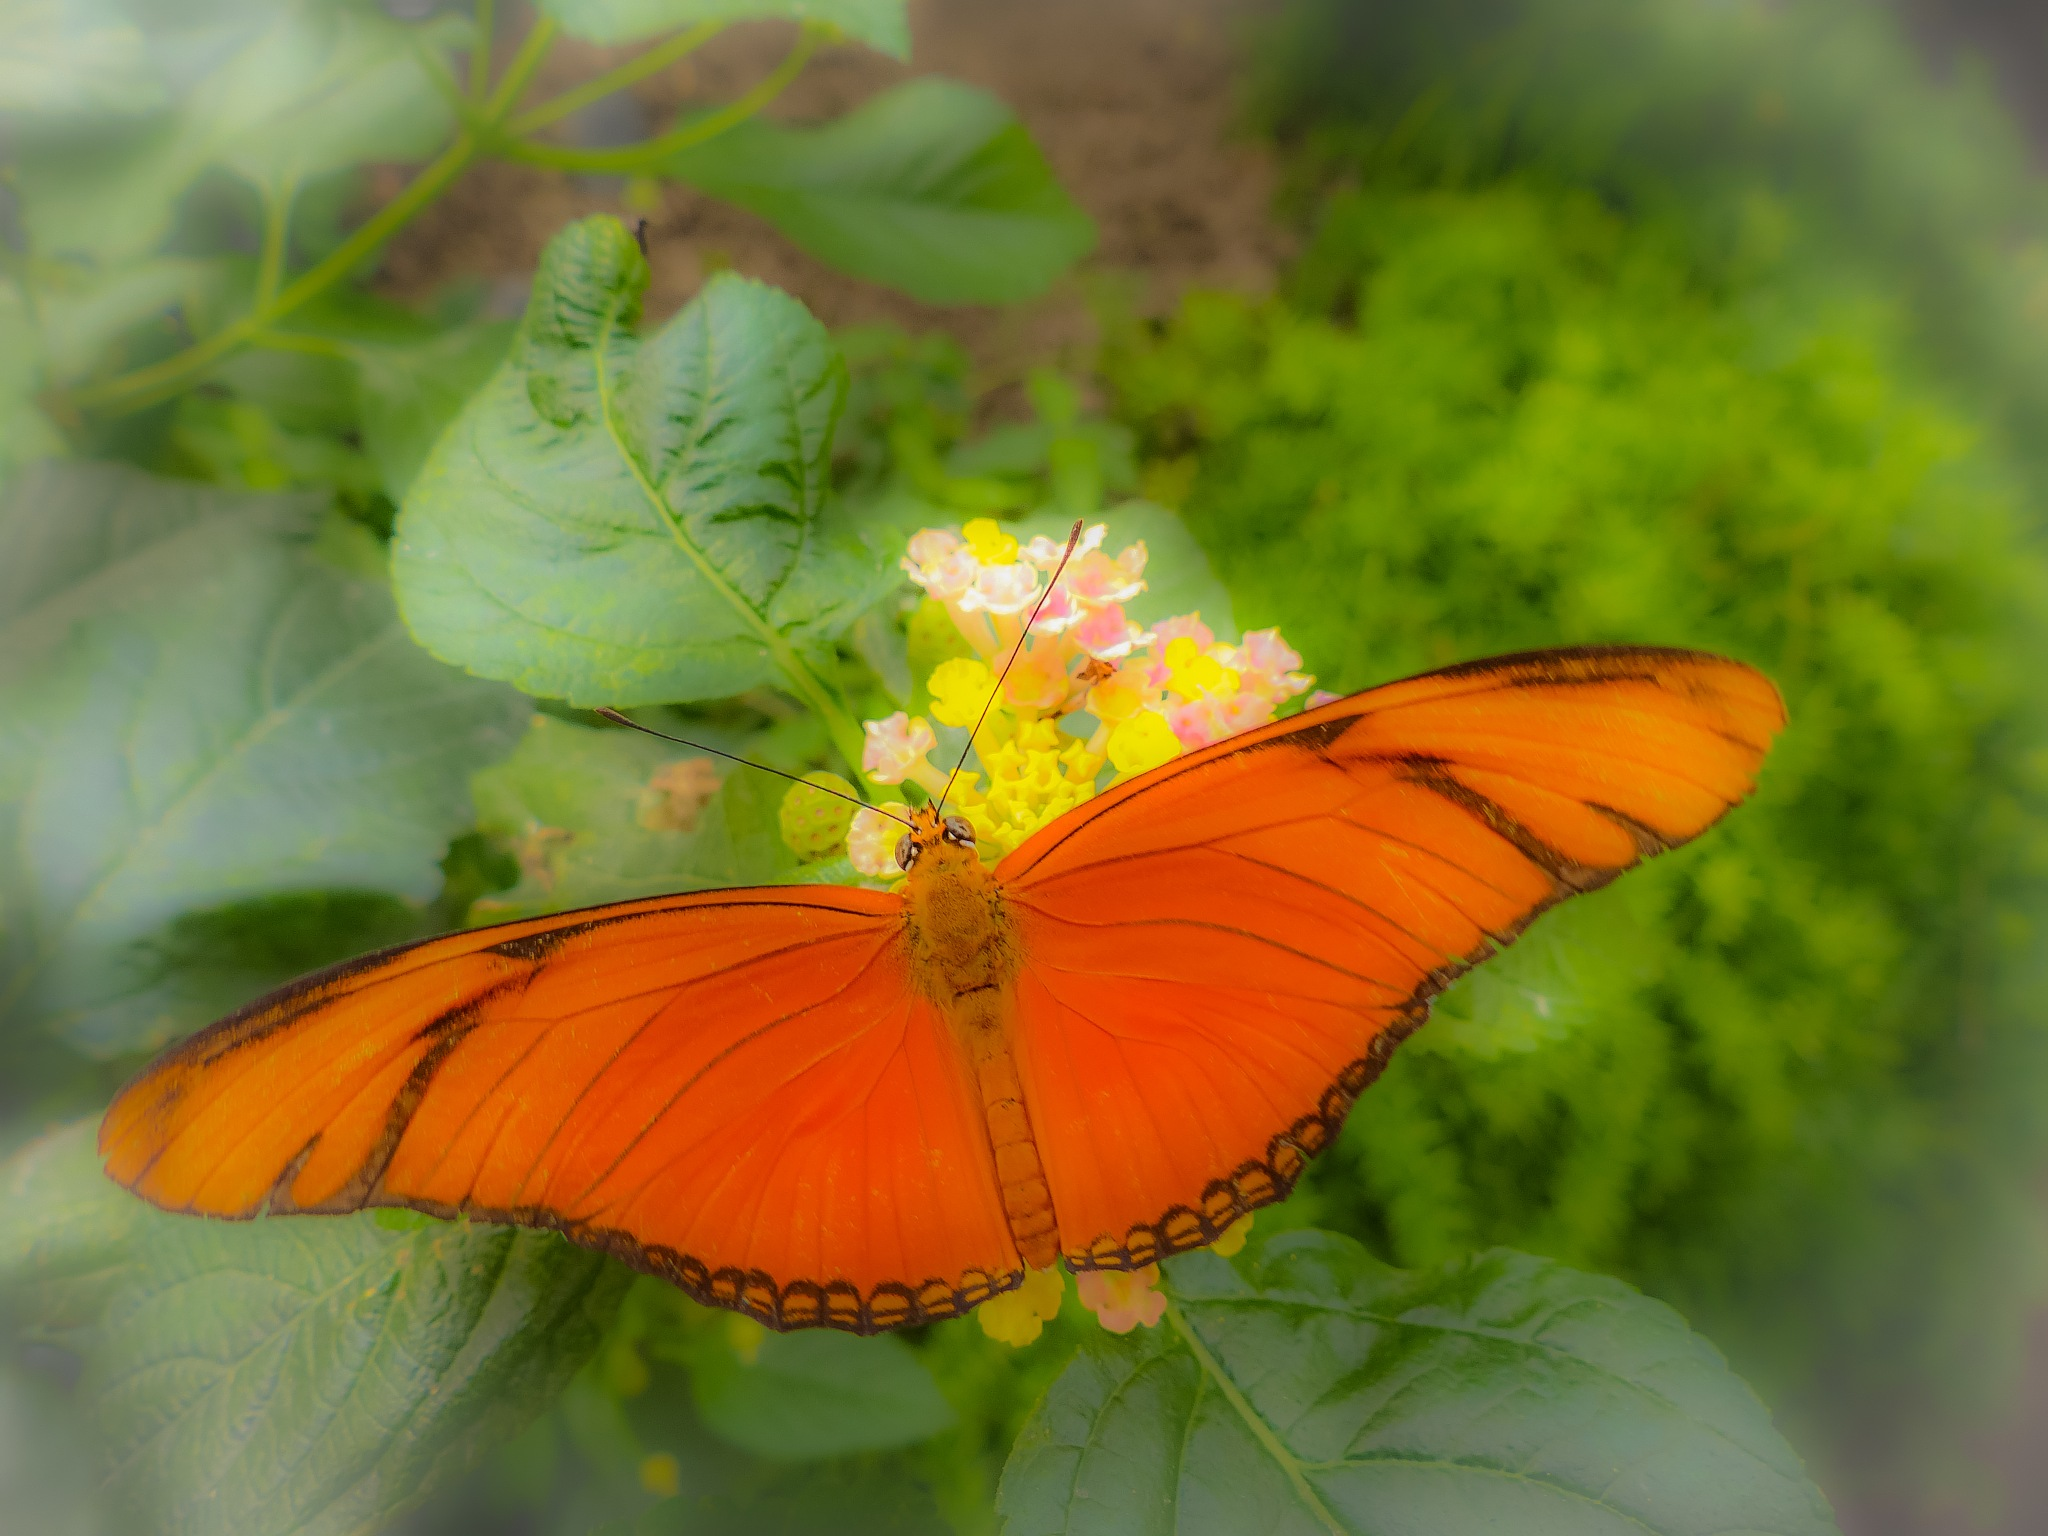 Butterfly 6 by Paul Geutjes